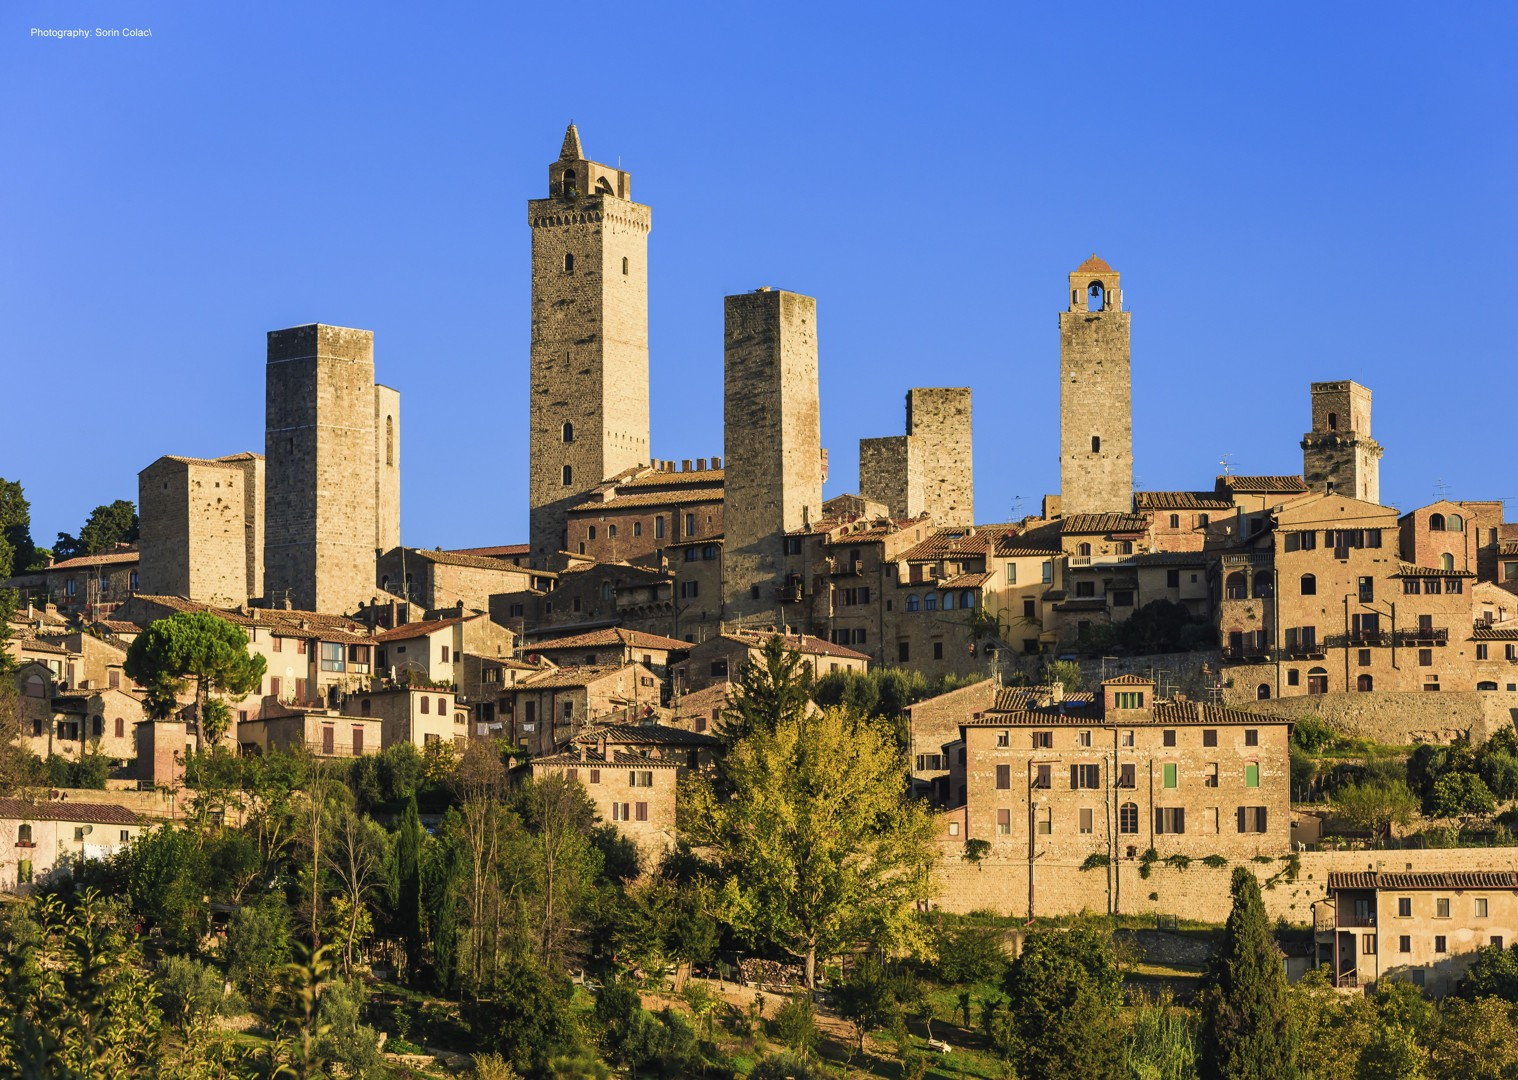 leisure-cycling-holiday-tuscany-sangimignano.jpg - Italy - A Taste of Tuscany - Italia Leisure and Family Cycling